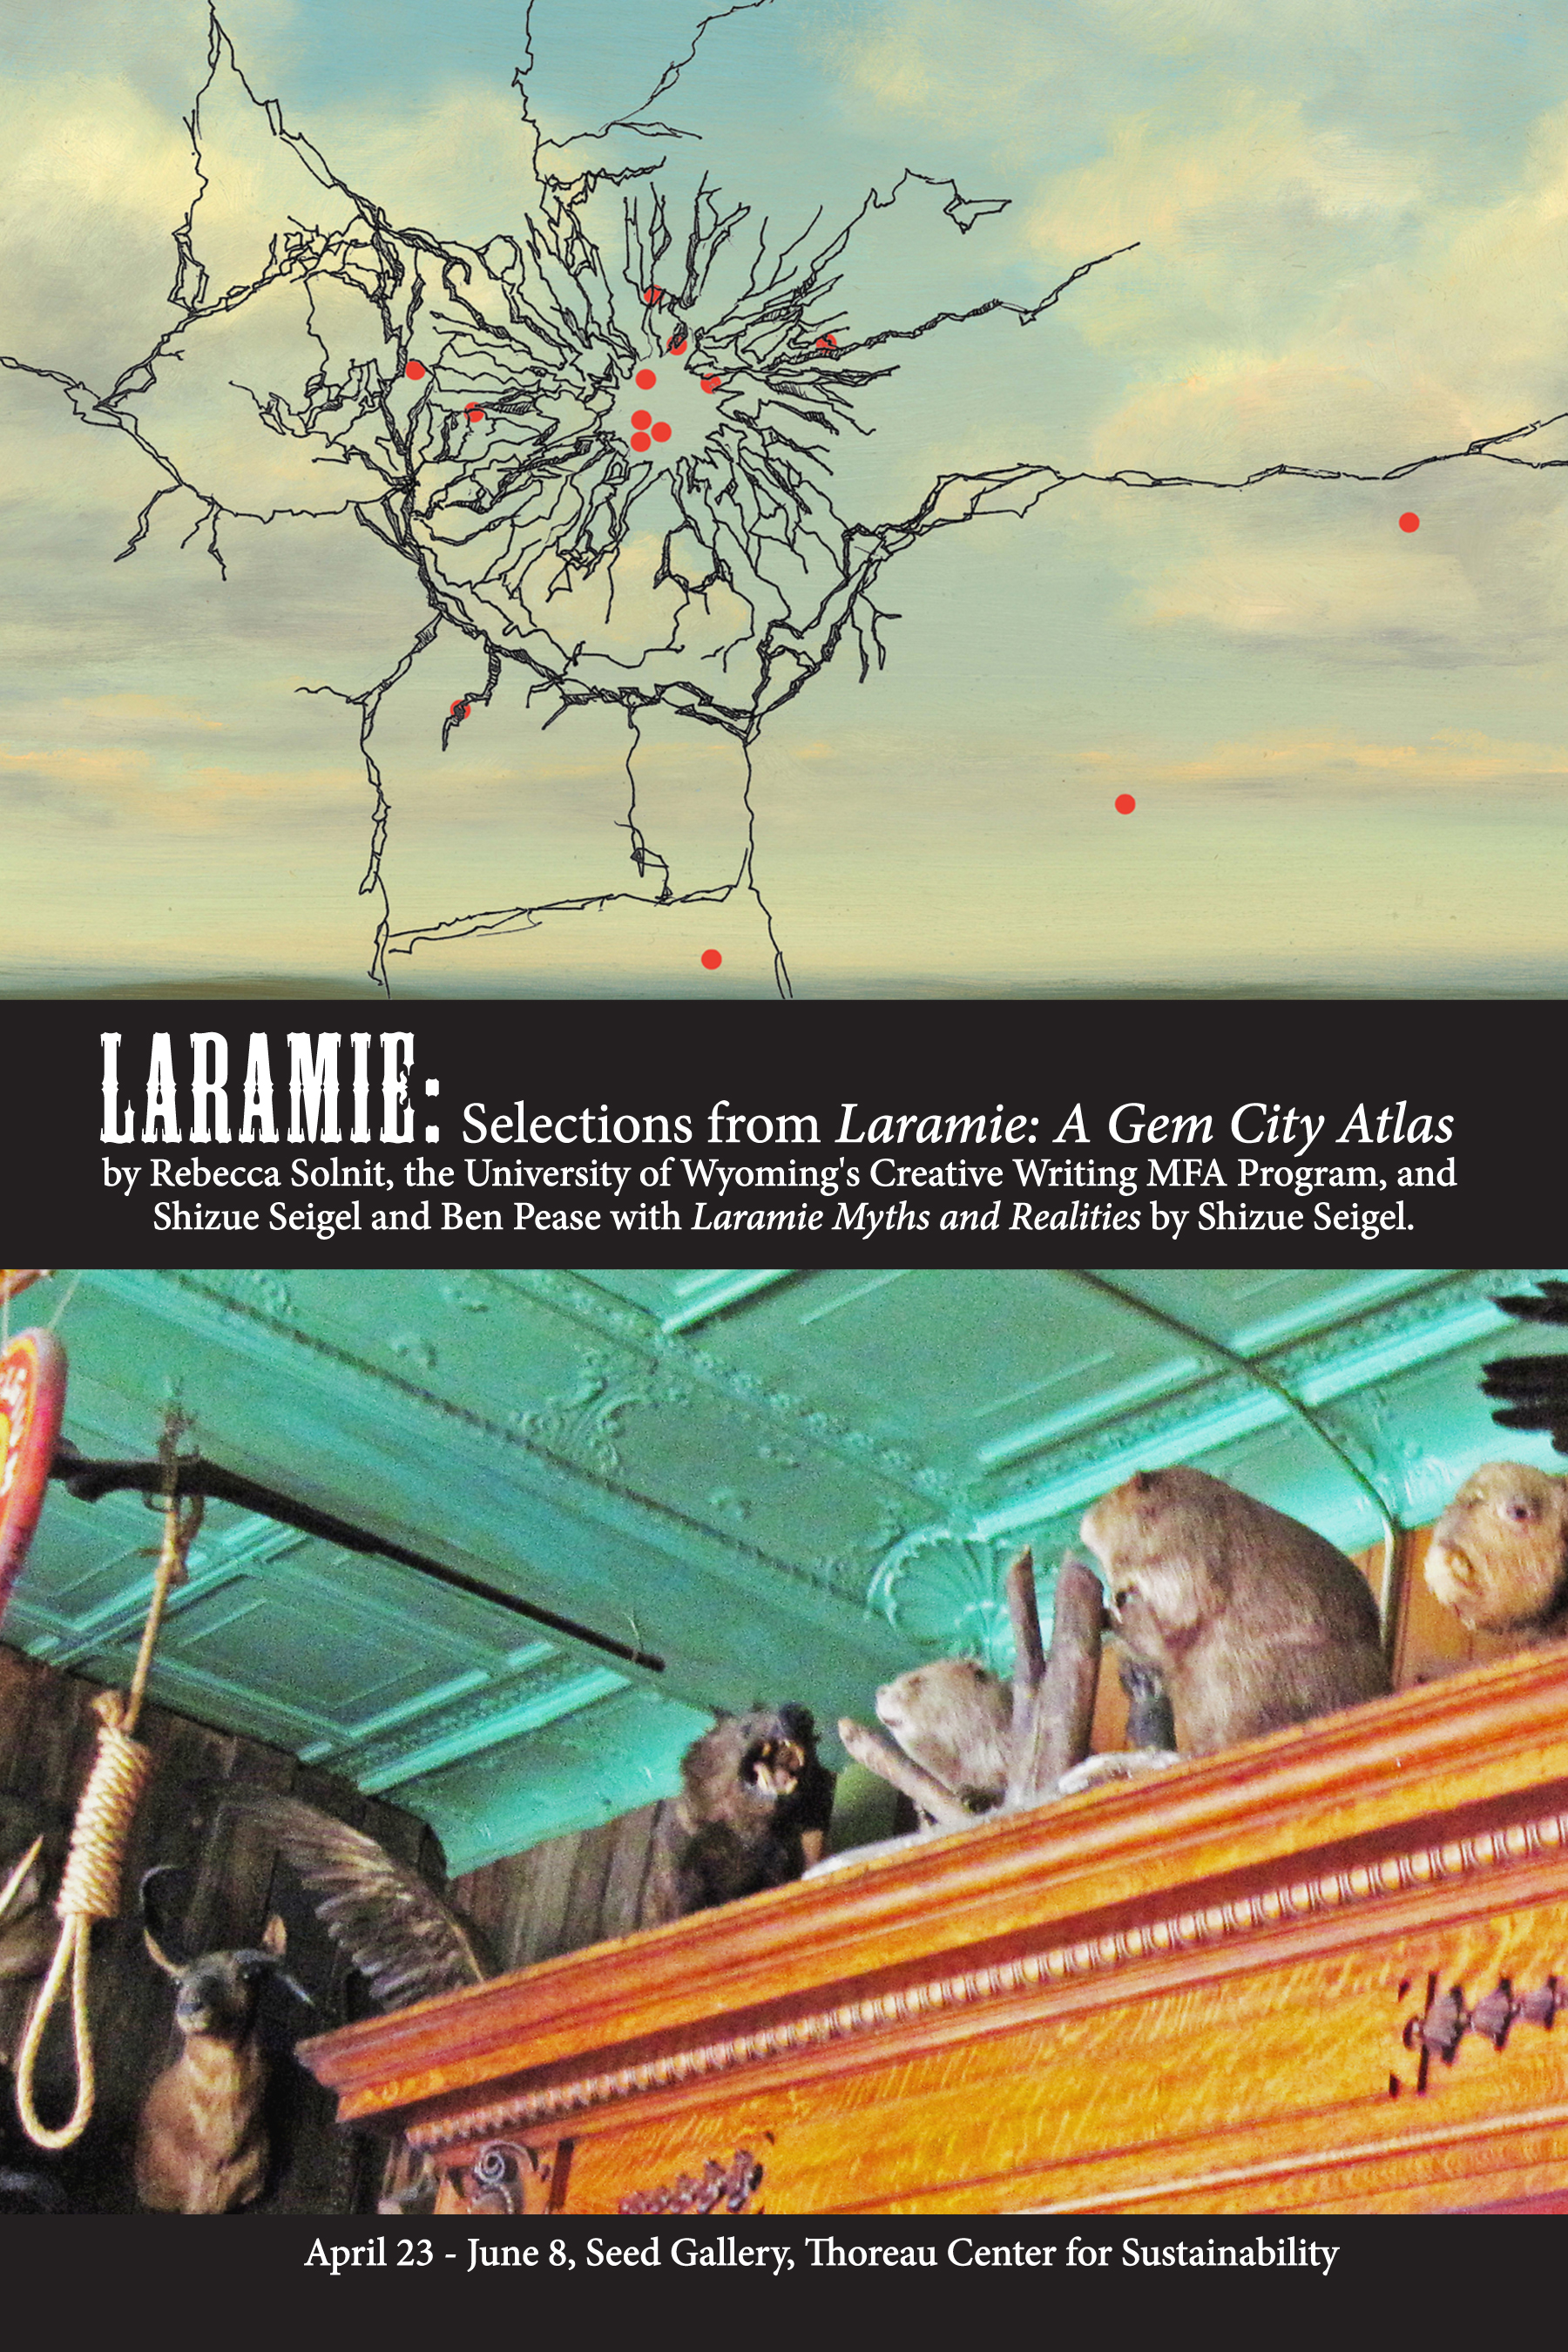 Laramie: Myths & Realities